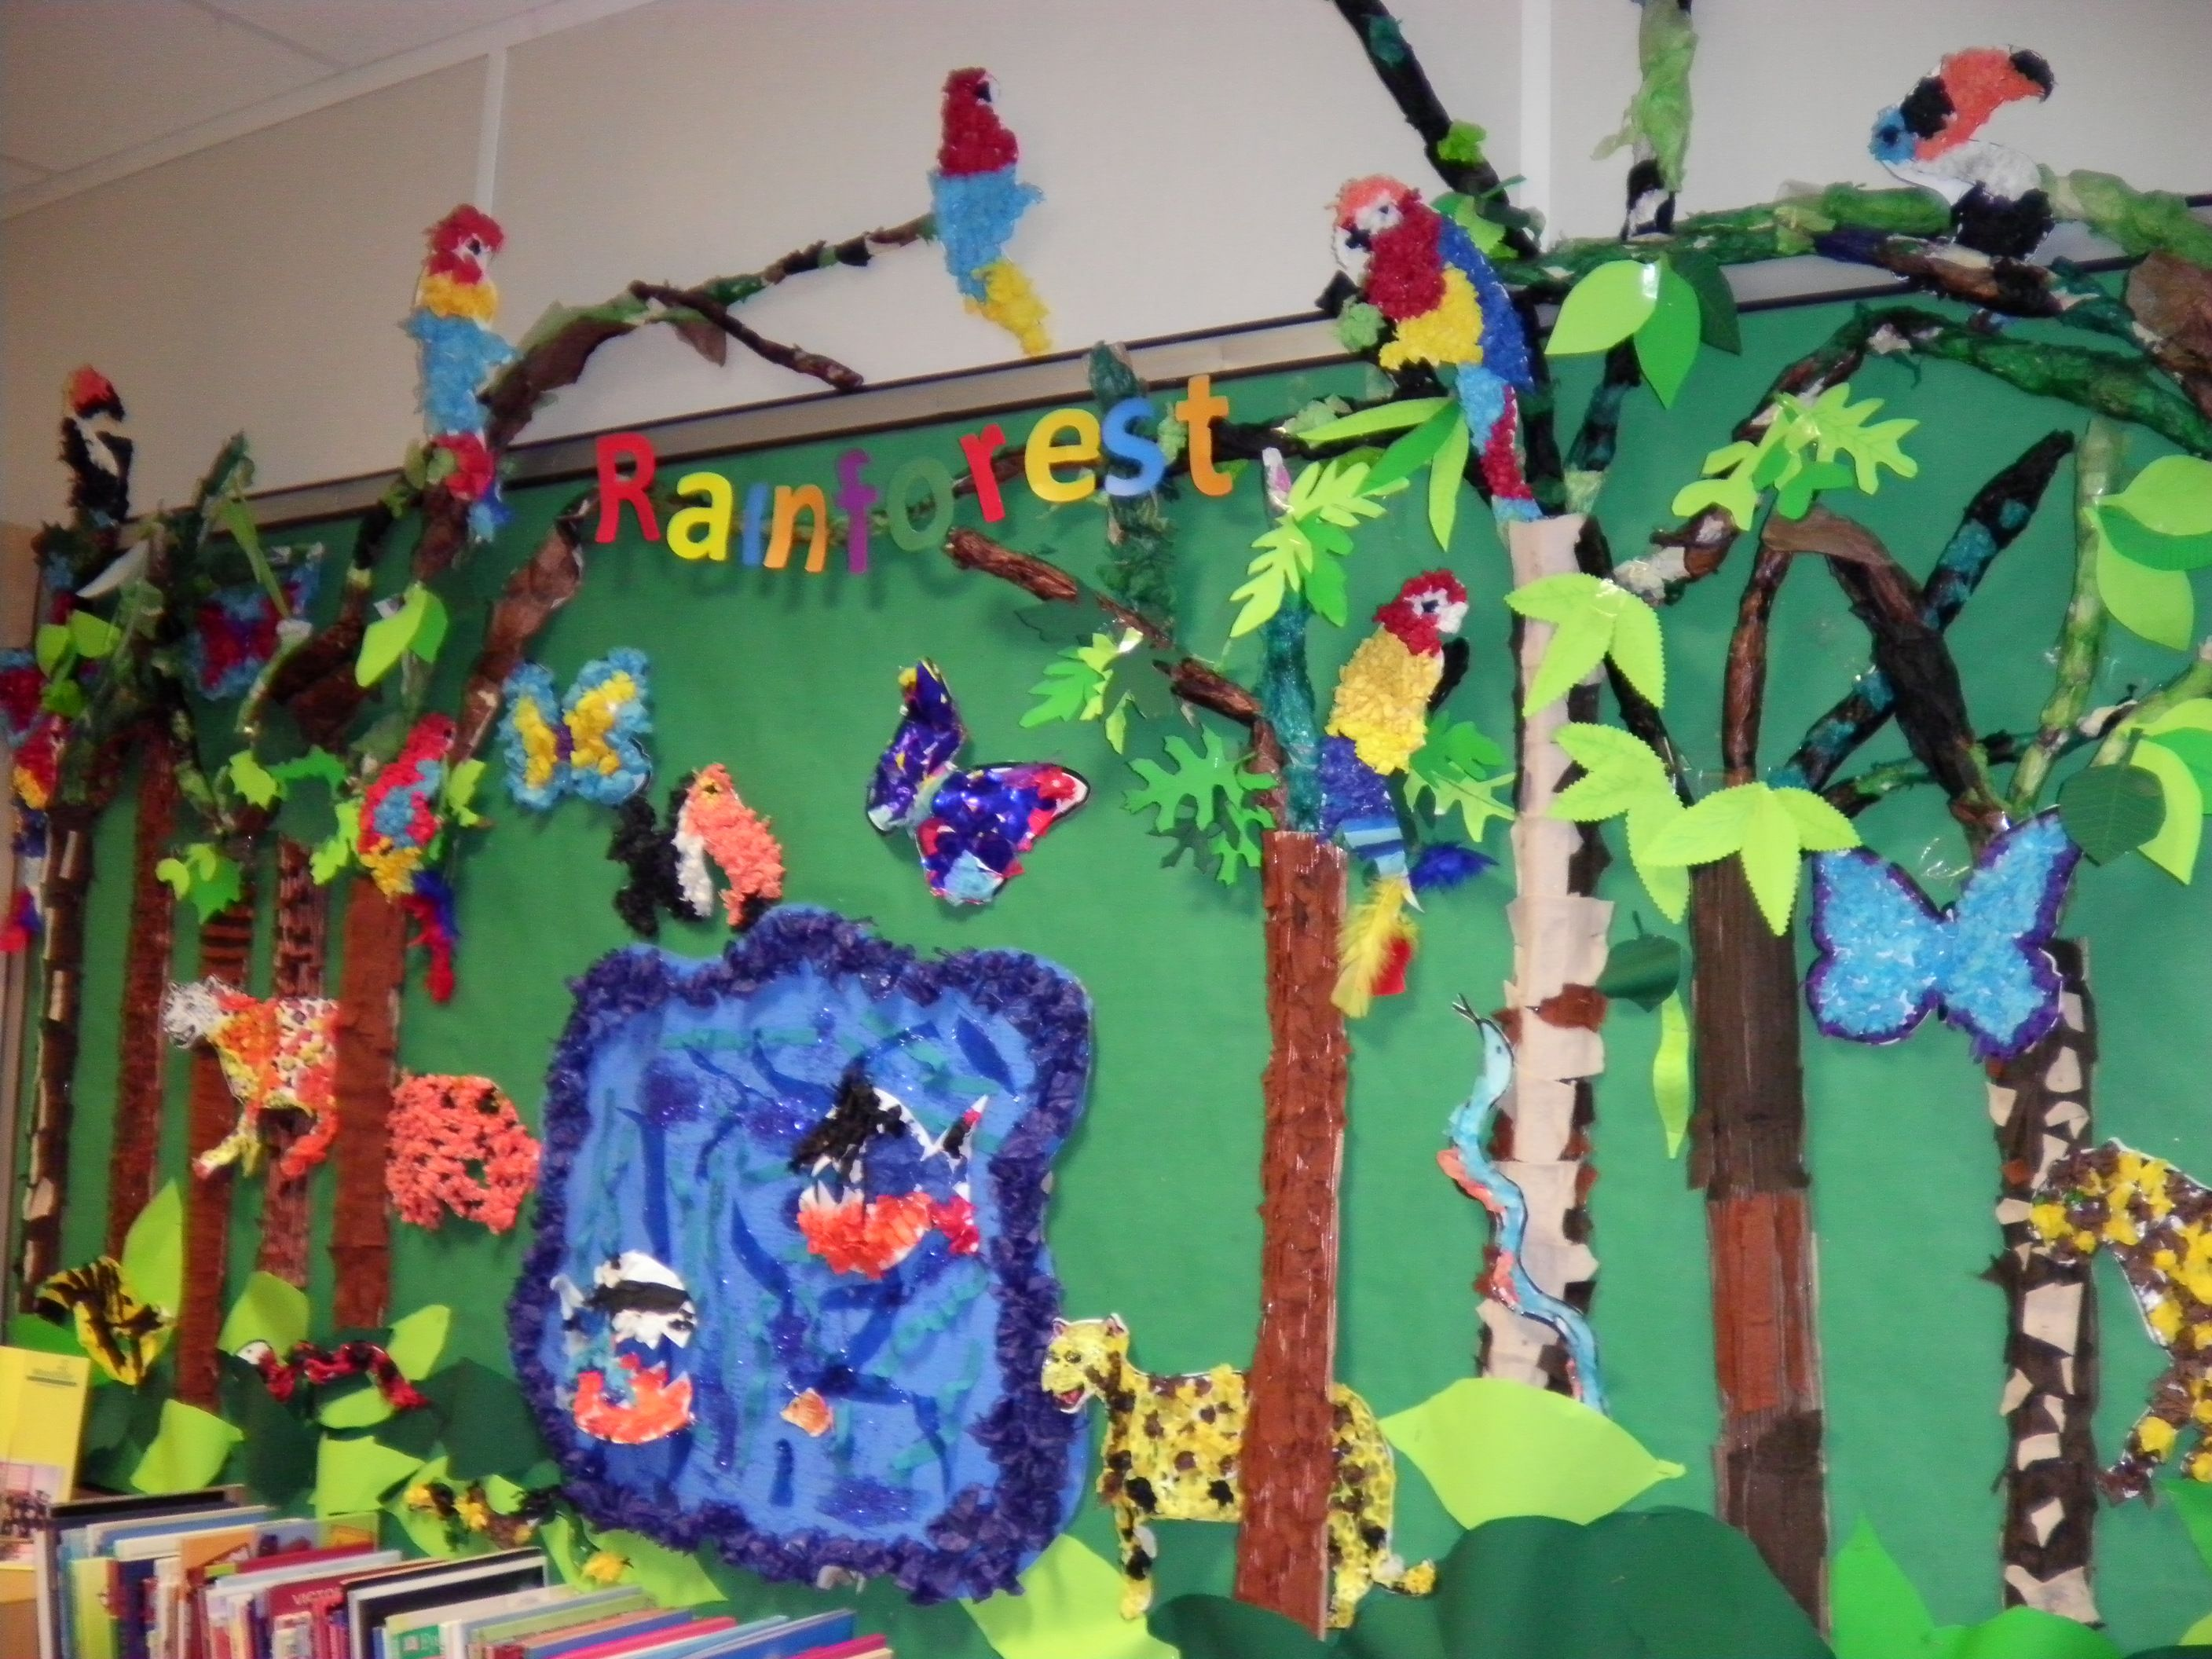 Rainforest Wall Display